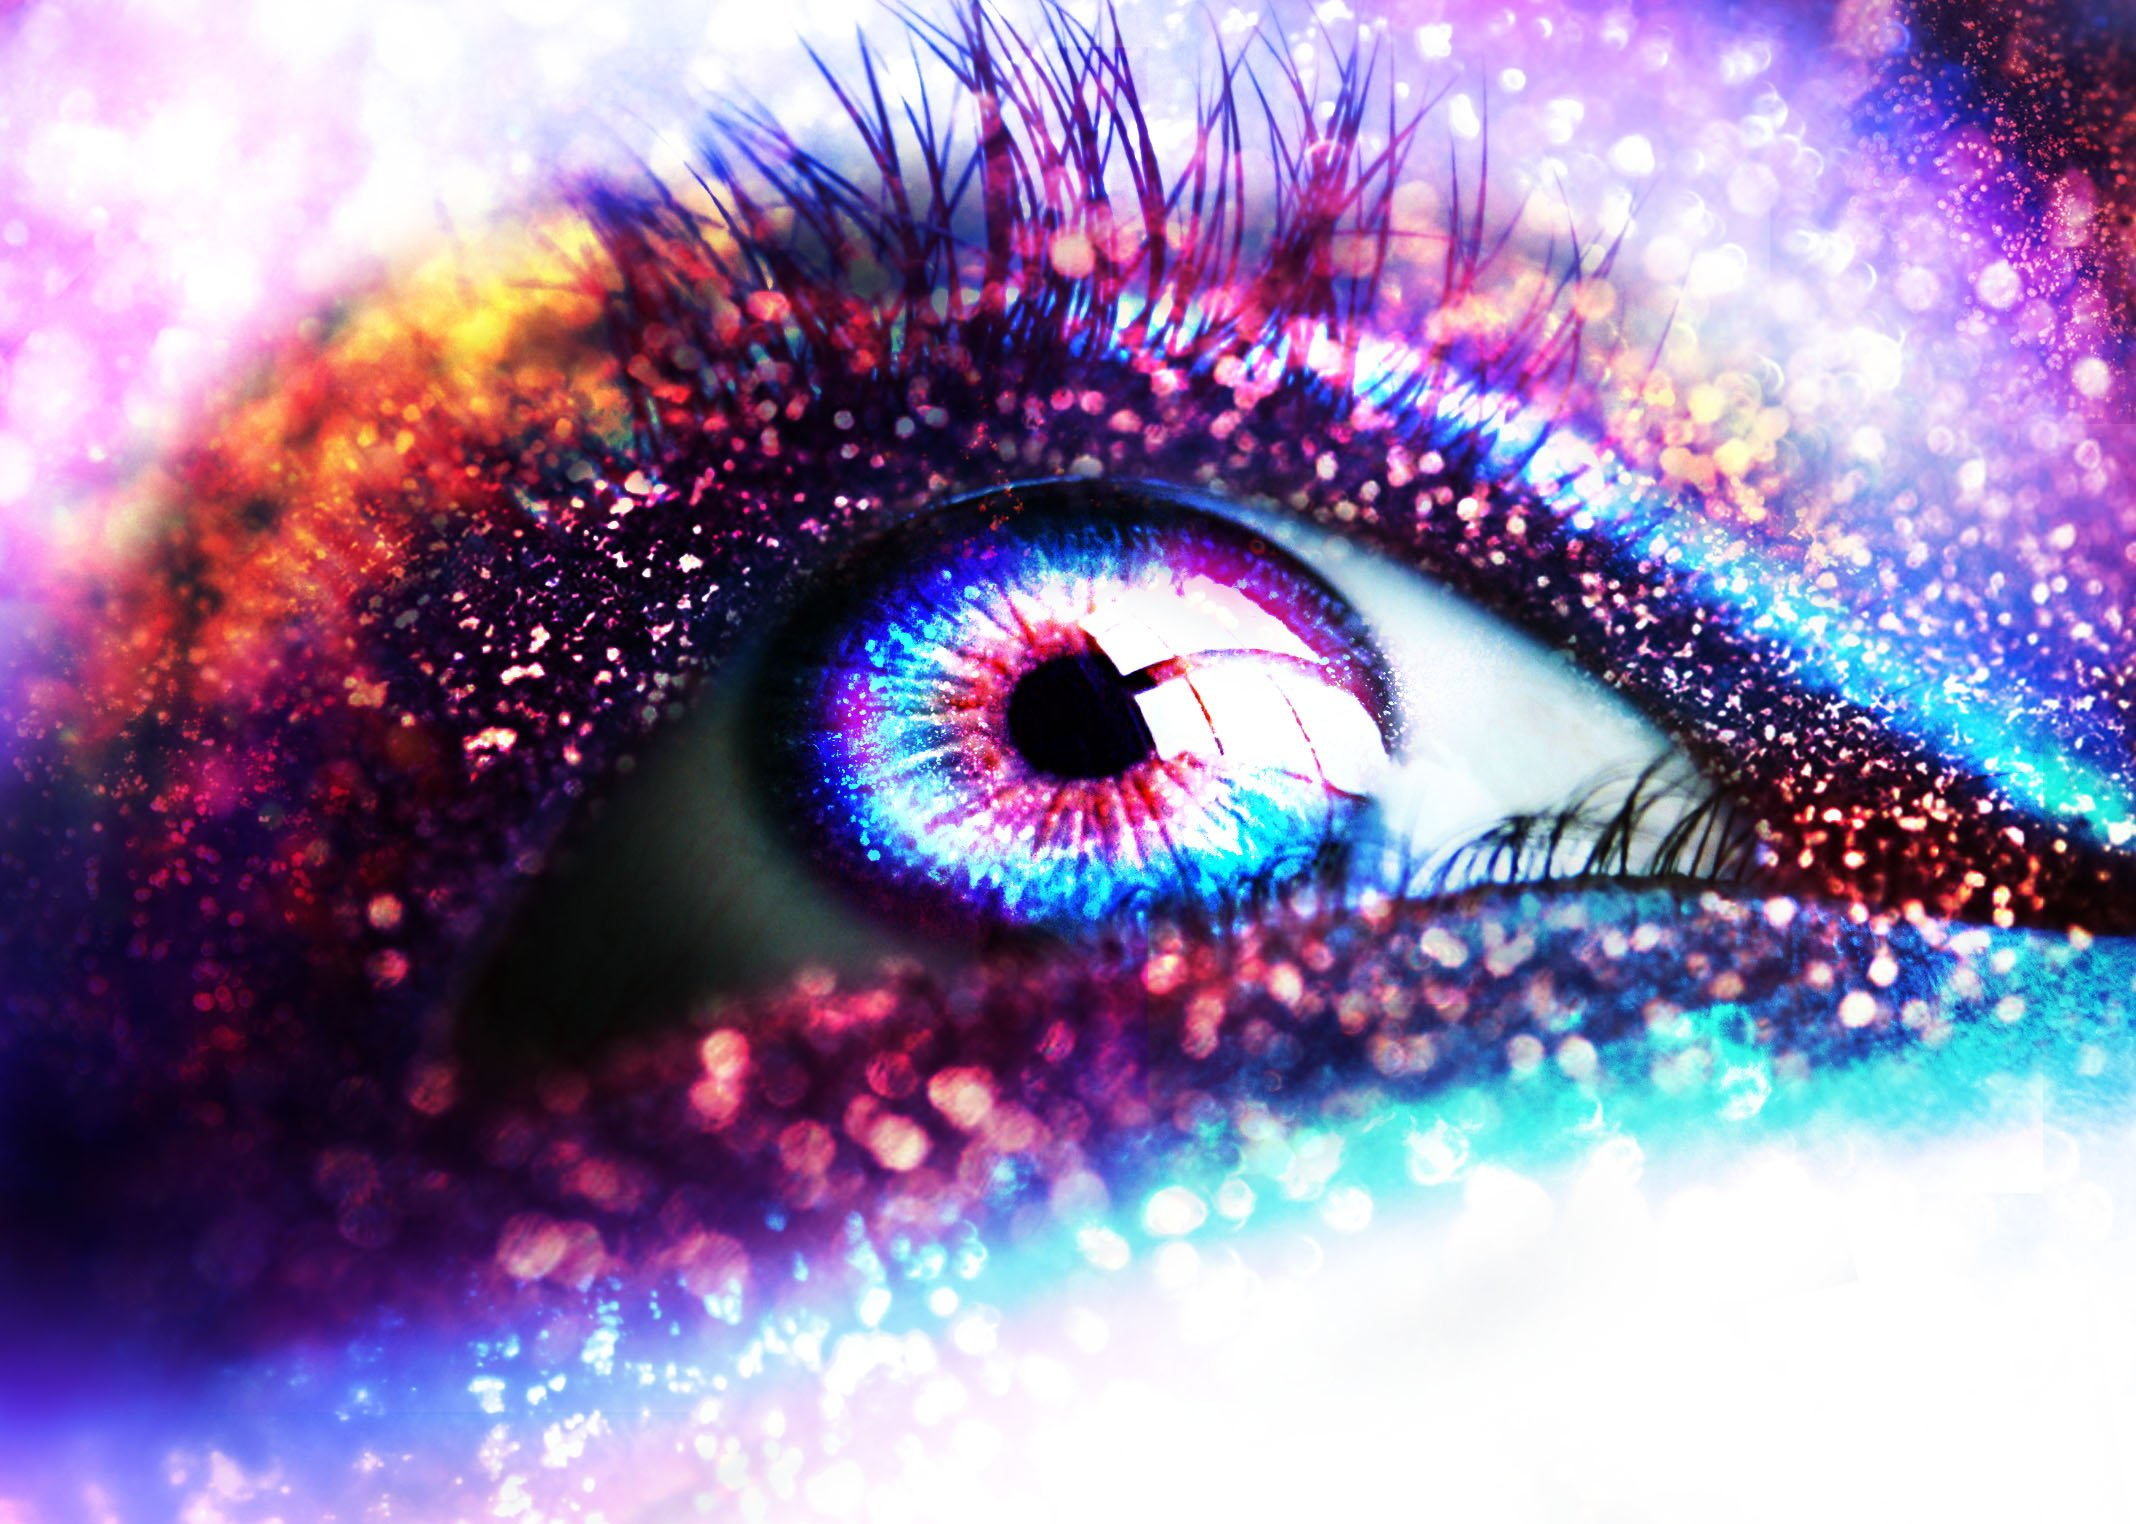 glitter sparkle psychedelic abstract abstraction bokeh eyes eye